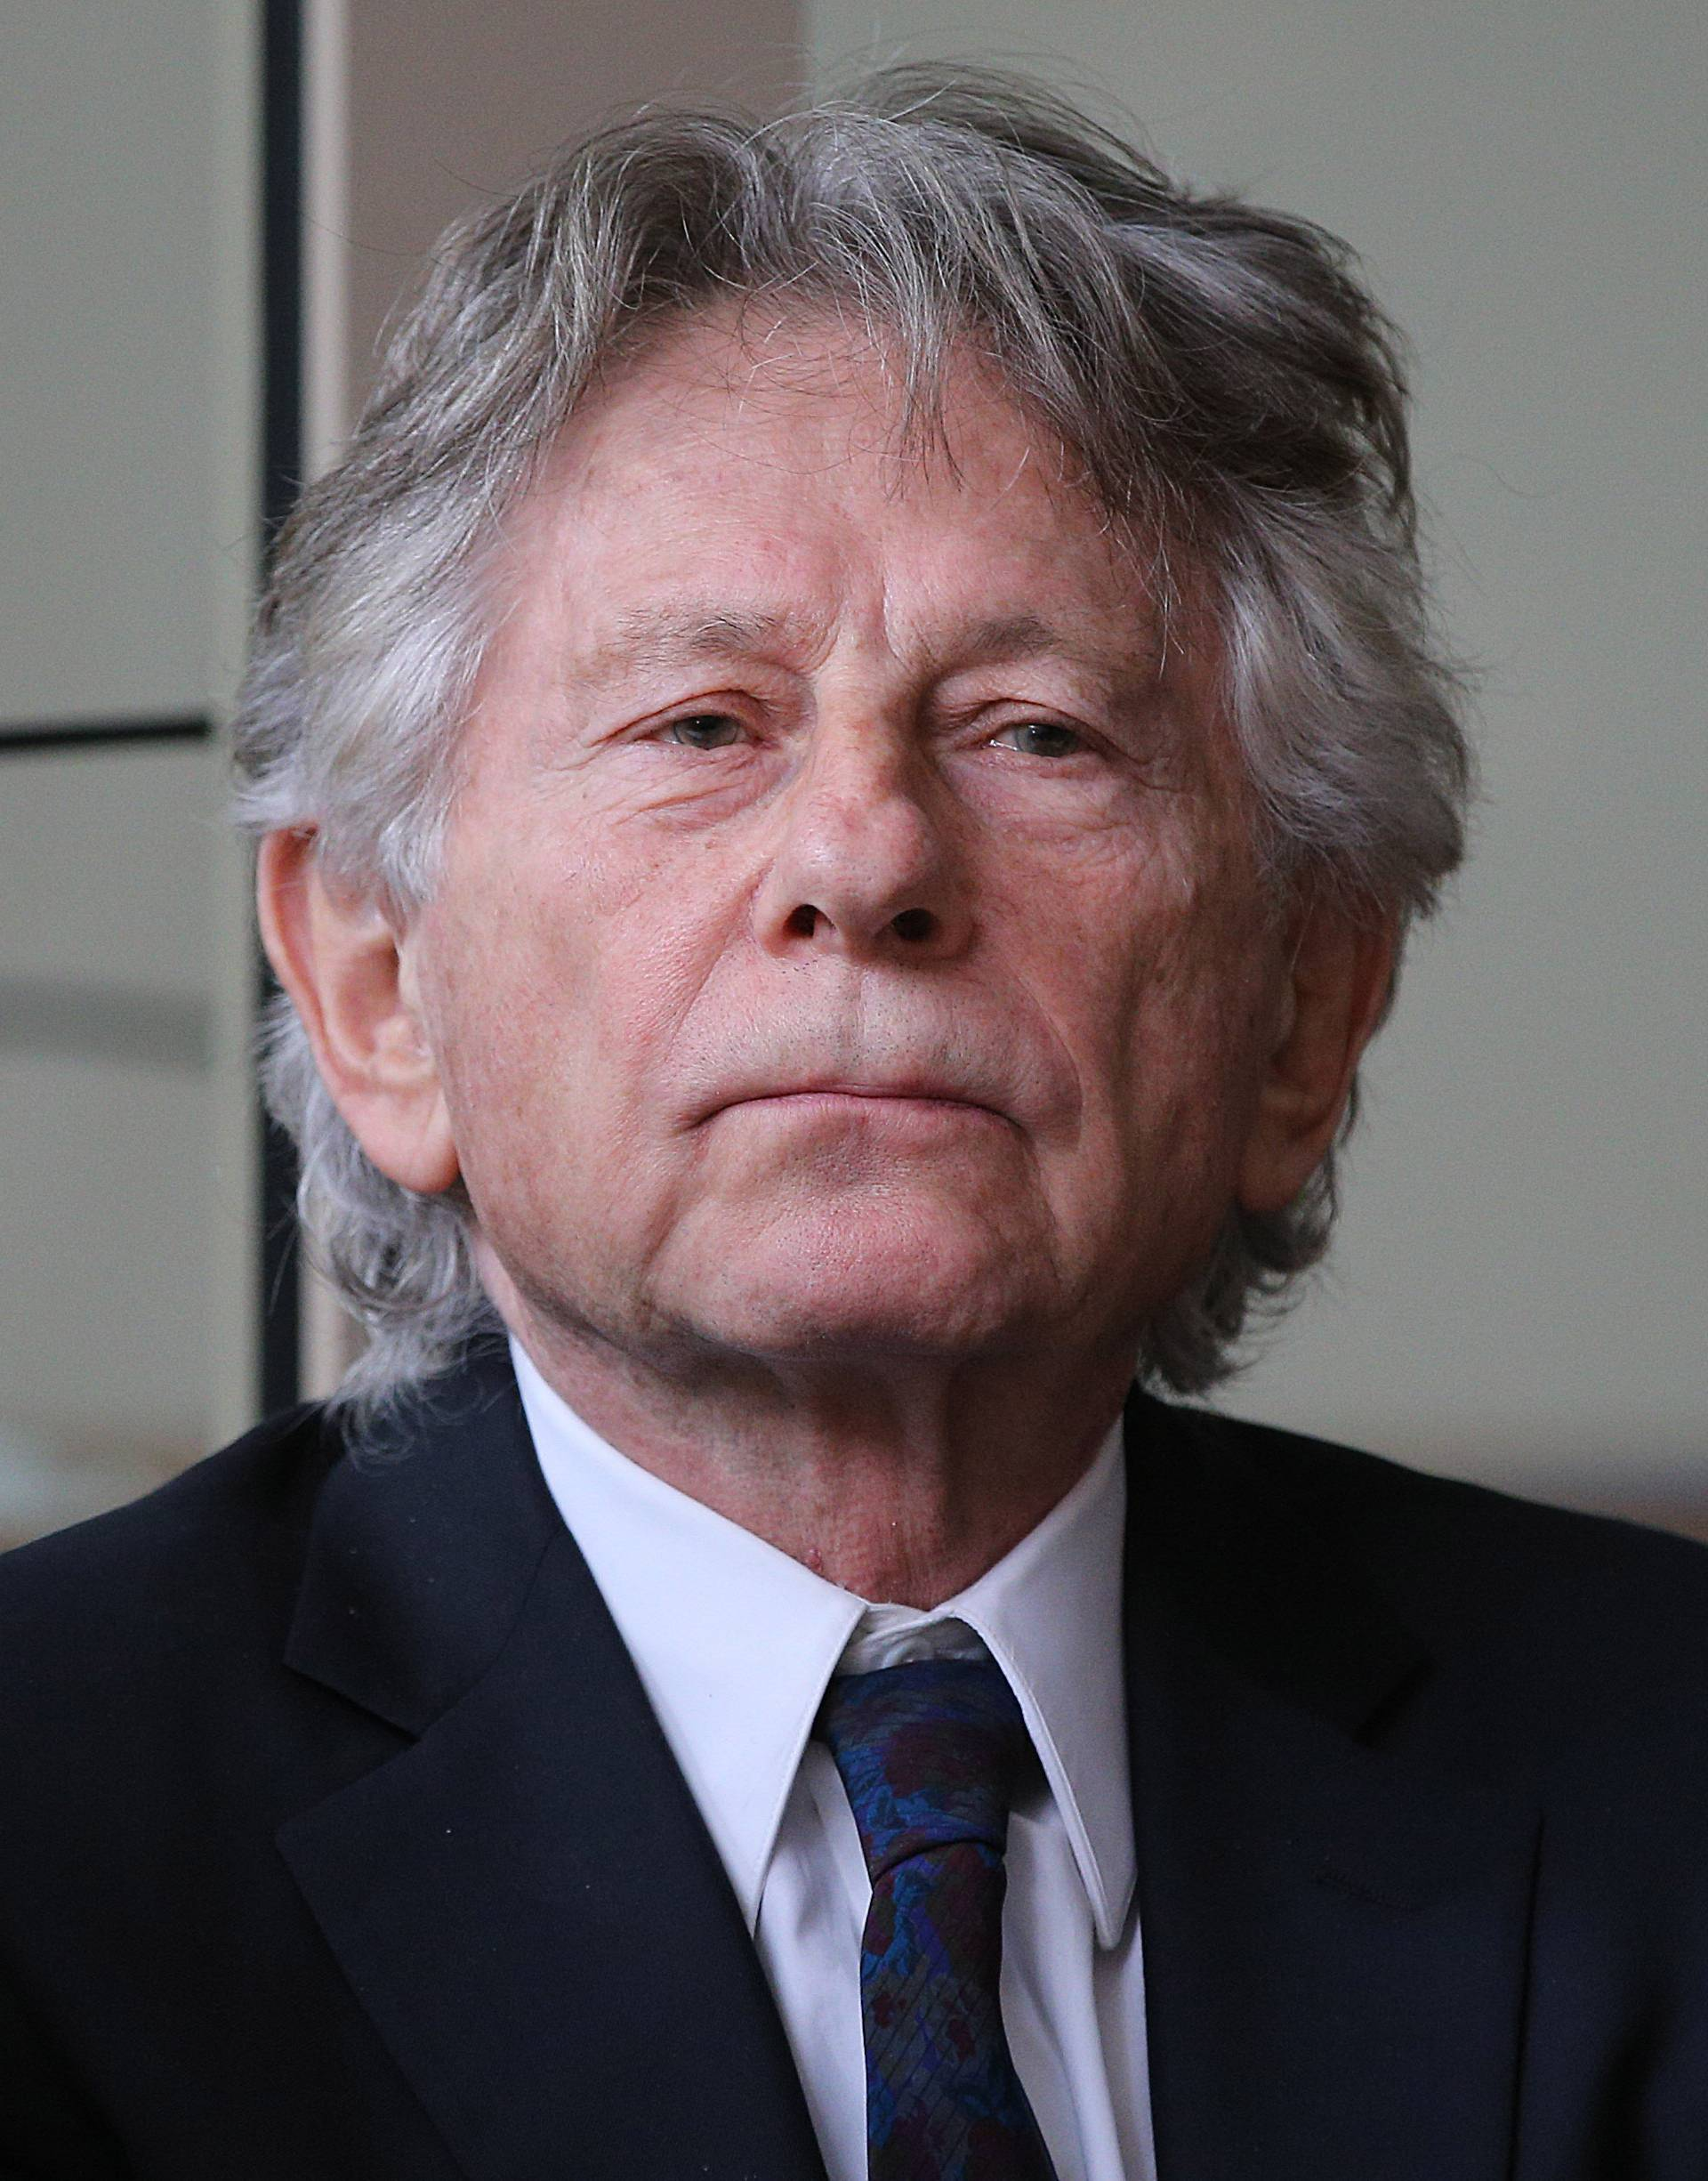 Roman Polanski at a court hearing